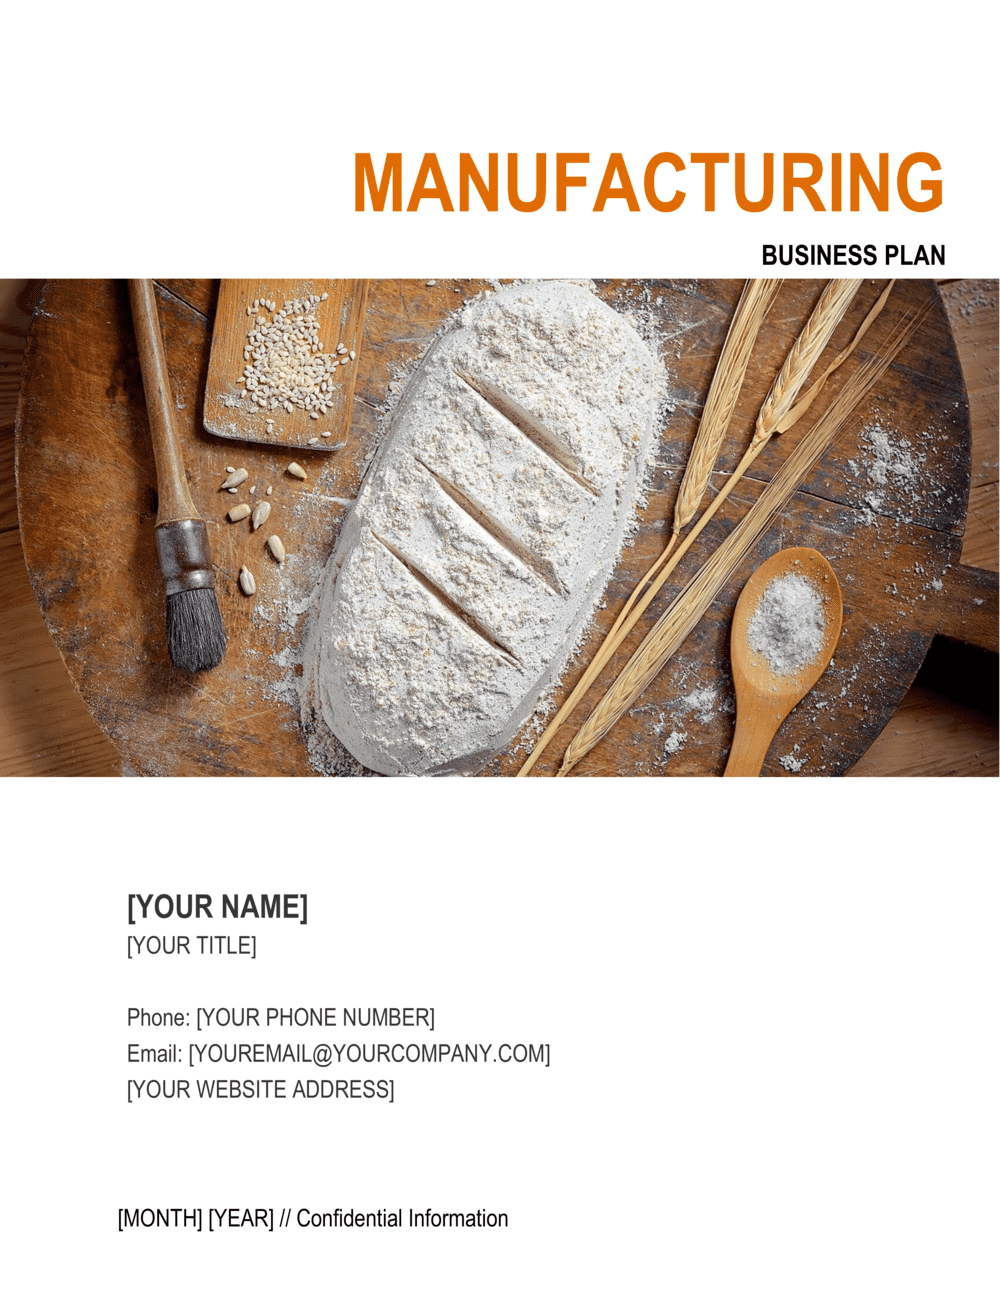 Business-in-a-Box's Manufacturing Business Plan 4 Template